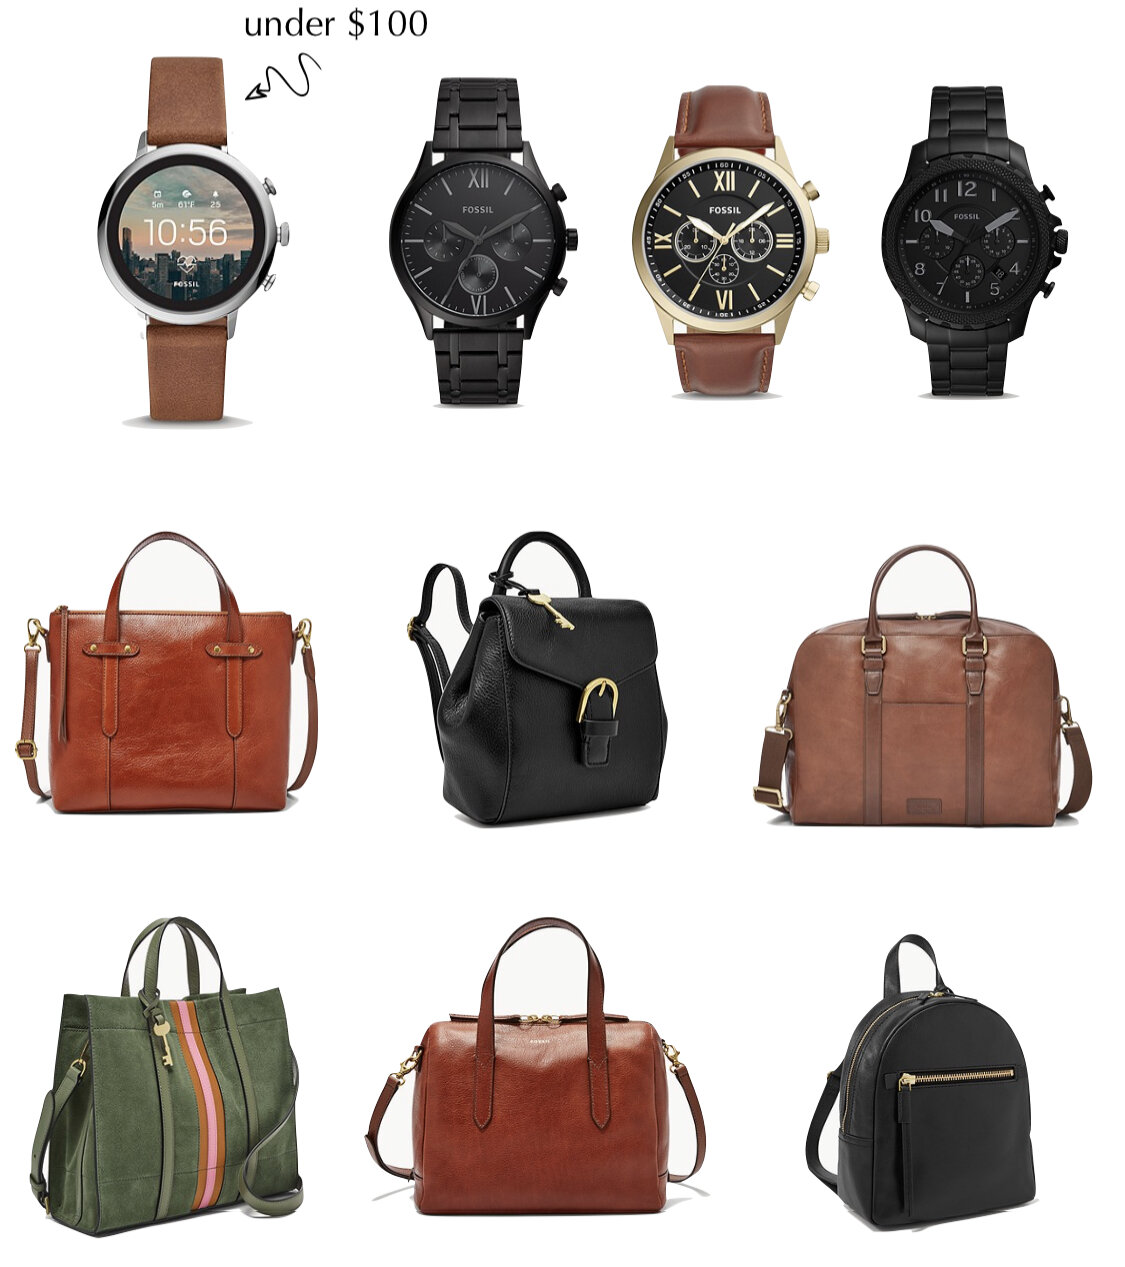 40% OFF ALMOST EVERYTHING AT FOSSIL